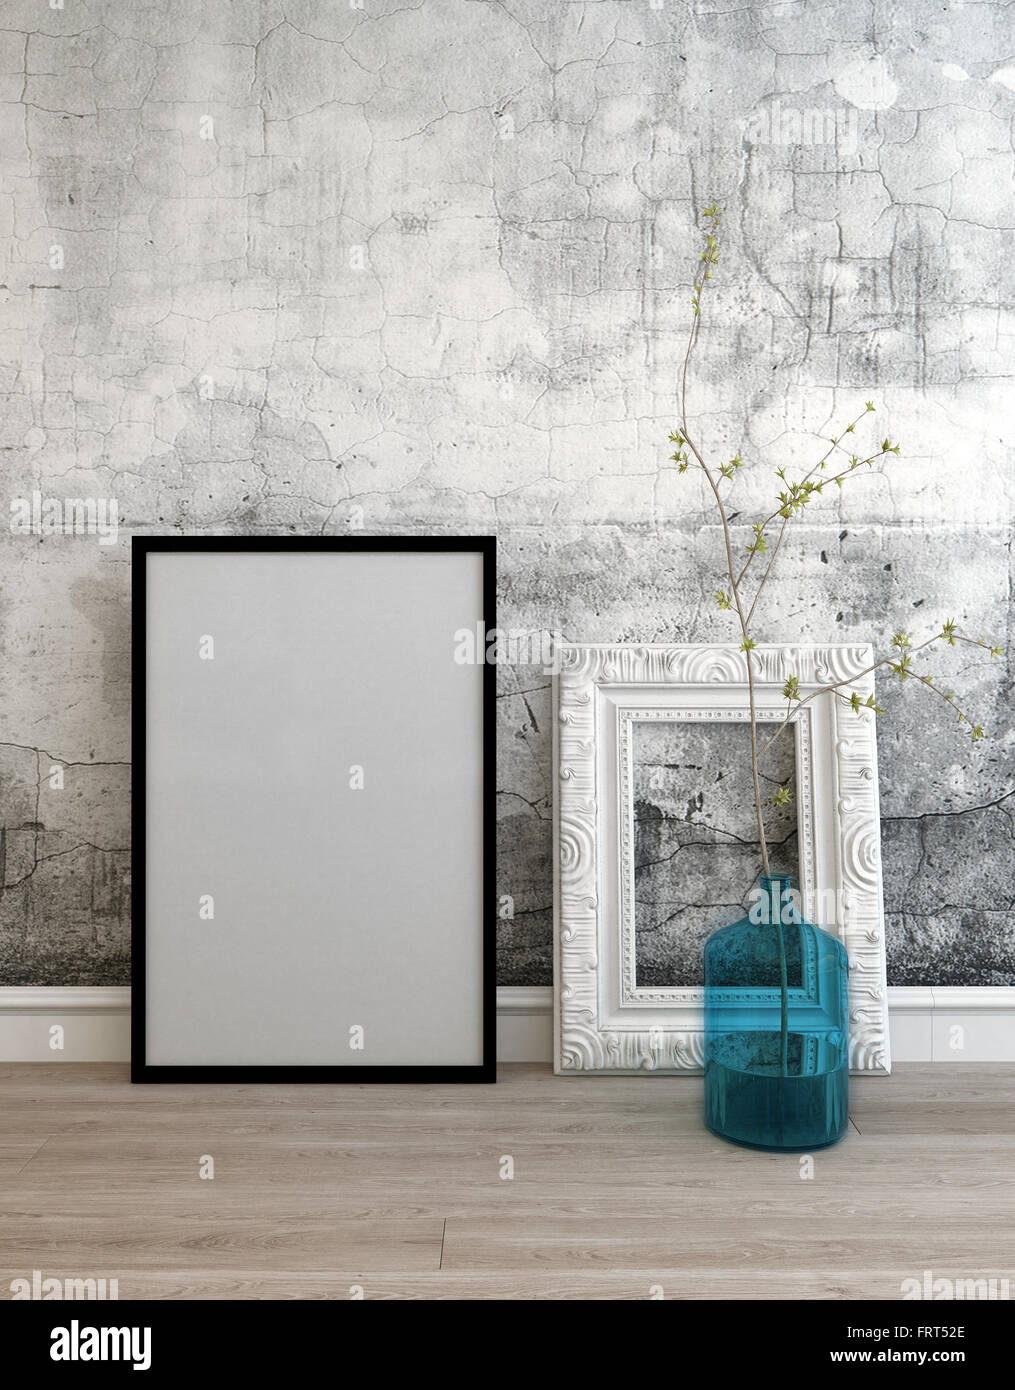 3d background setting of old wall and two empty picture frames 3d background setting of old wall and two empty picture frames with black border on wooden floor next to little tree in large water dispenser jeuxipadfo Gallery